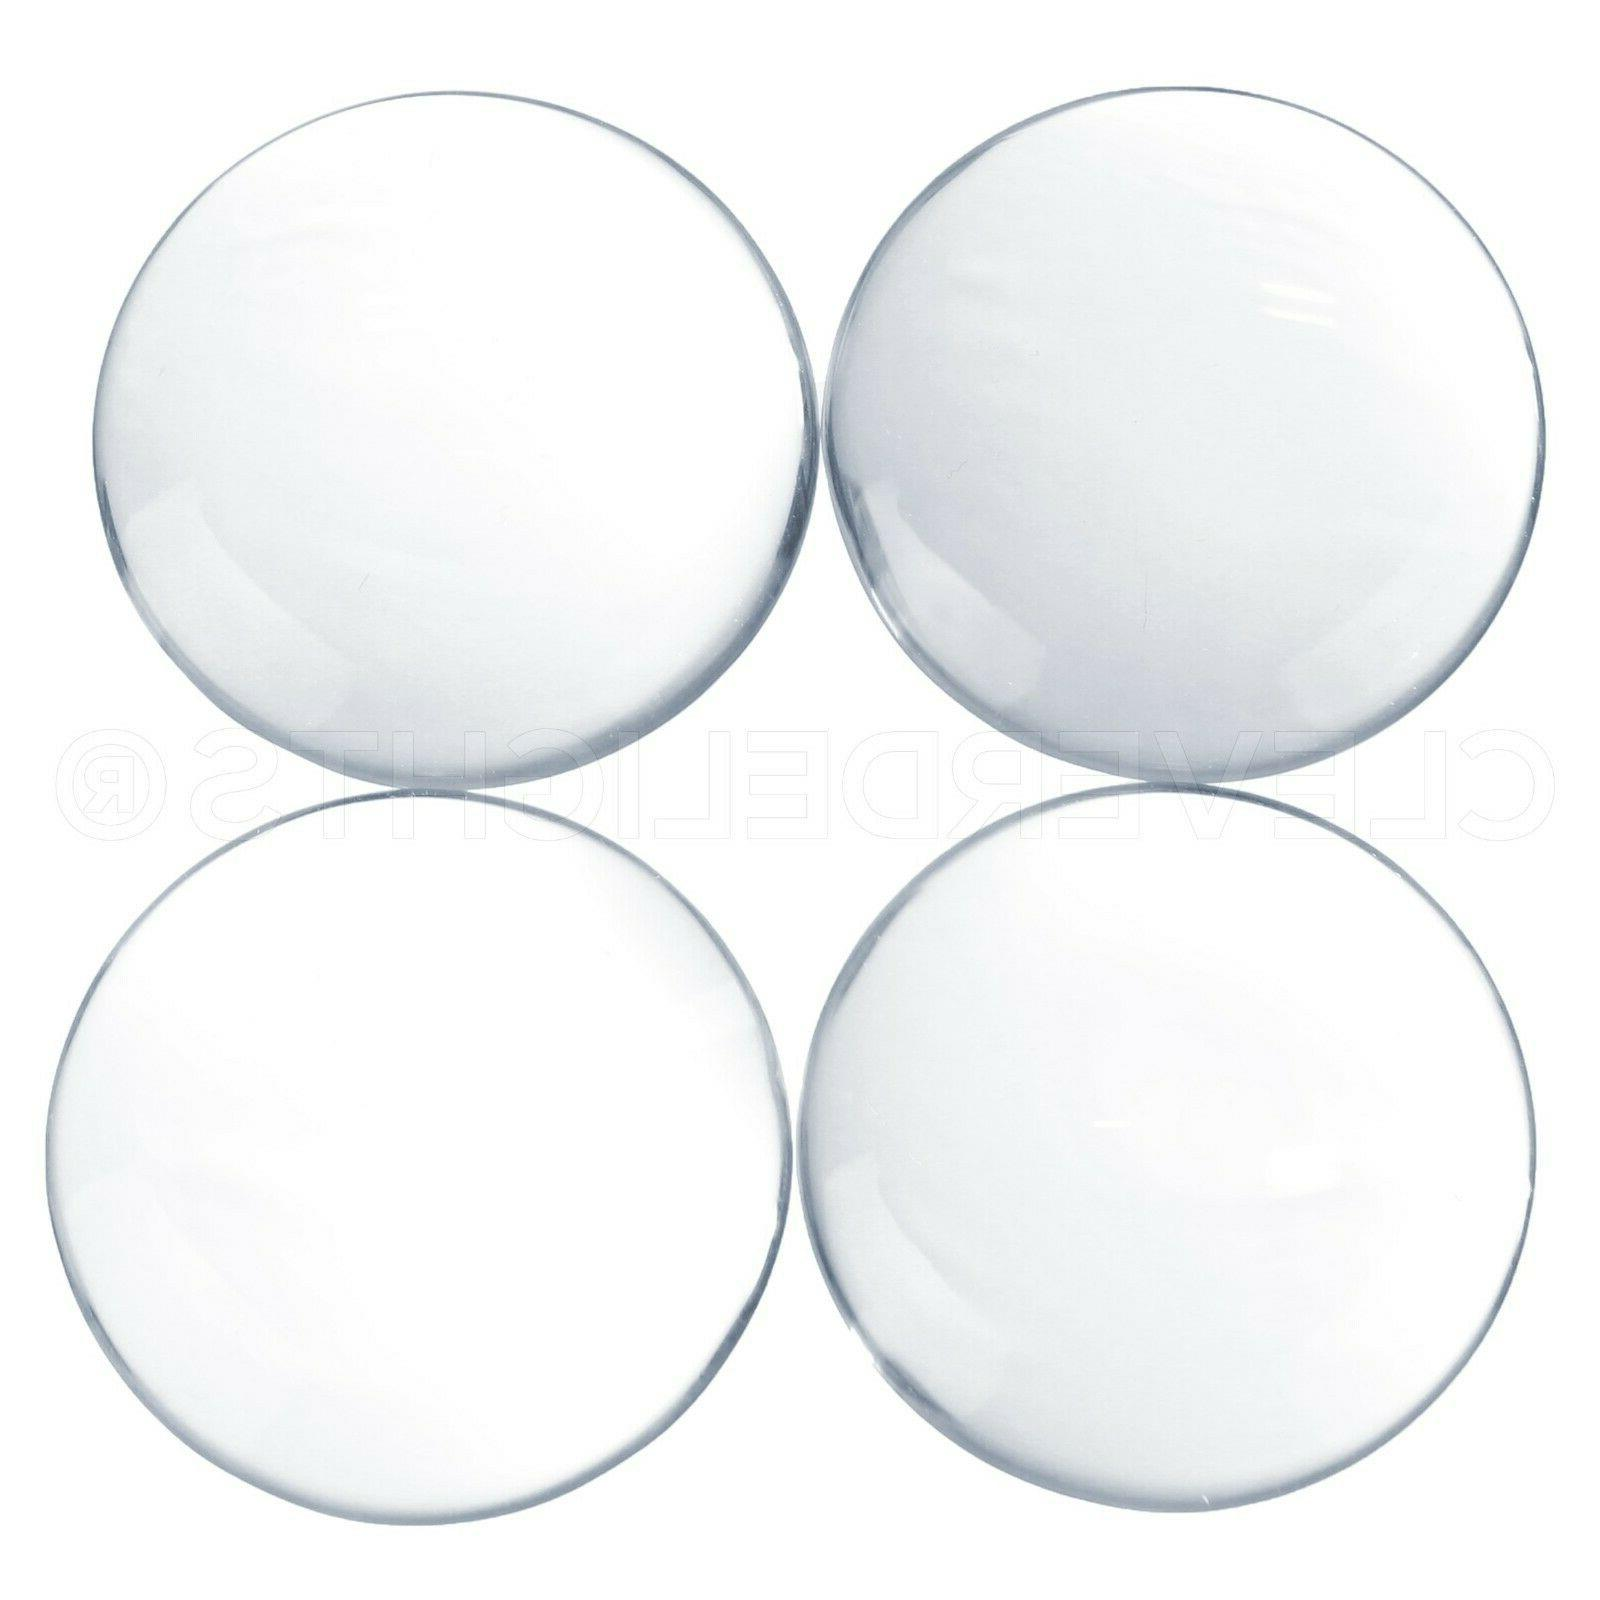 40mm round glass cabochons clear magnifying dome